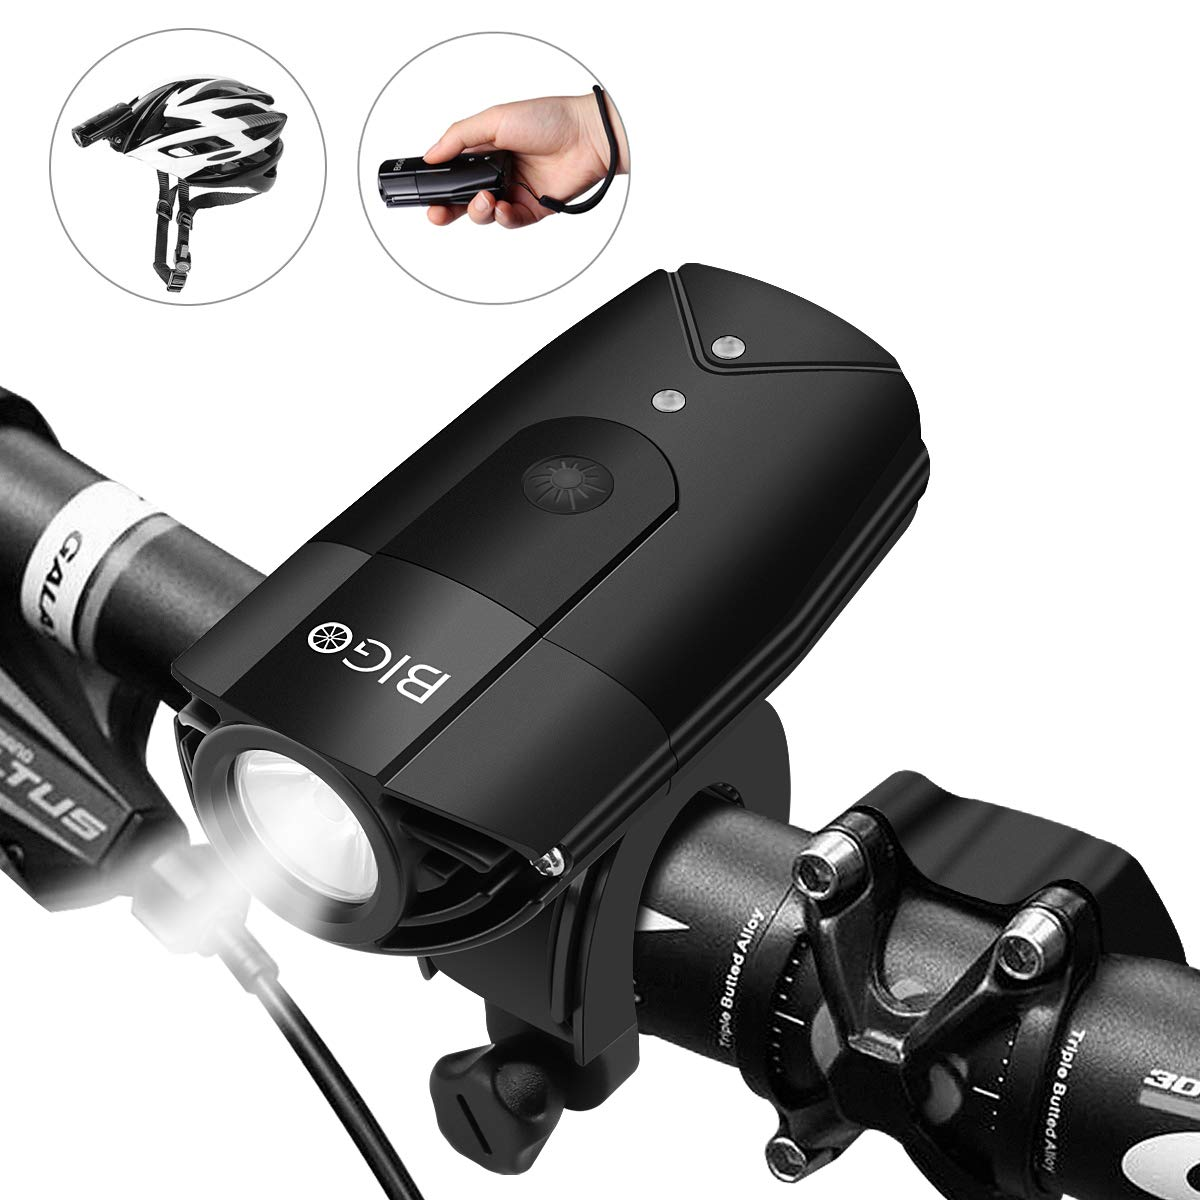 BIGO LED Bike Lights USB Rechargeable Bike Front Light 900 Lumens Super Bright Bicycle Lights Bike Headlight IP65 Waterproof 3 Light Modes Easy to Install for Cycling Safety Flashlight